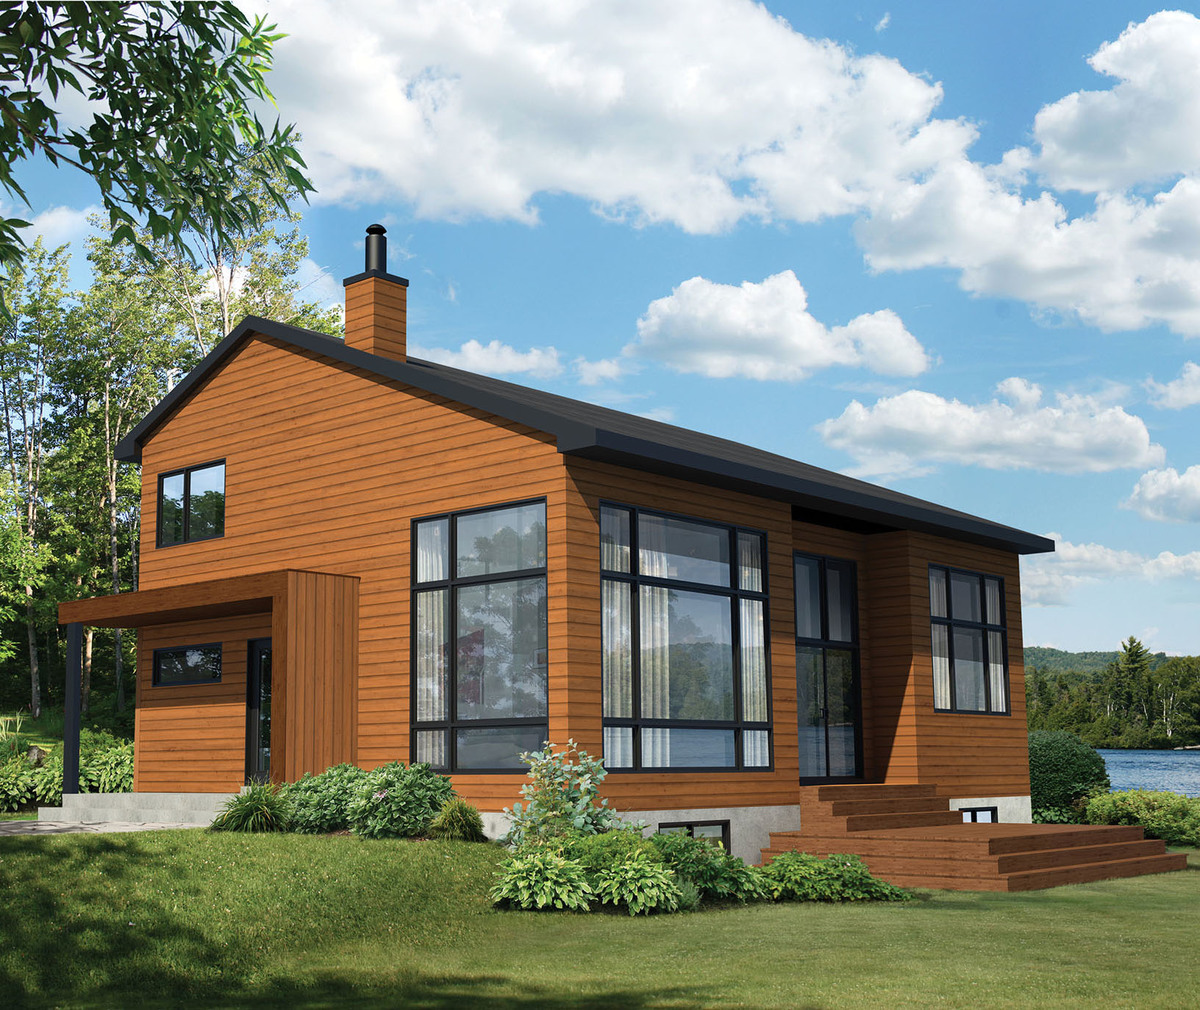 Vacation retreat 80772pm architectural designs house - Large summer houses energizing retreat ...